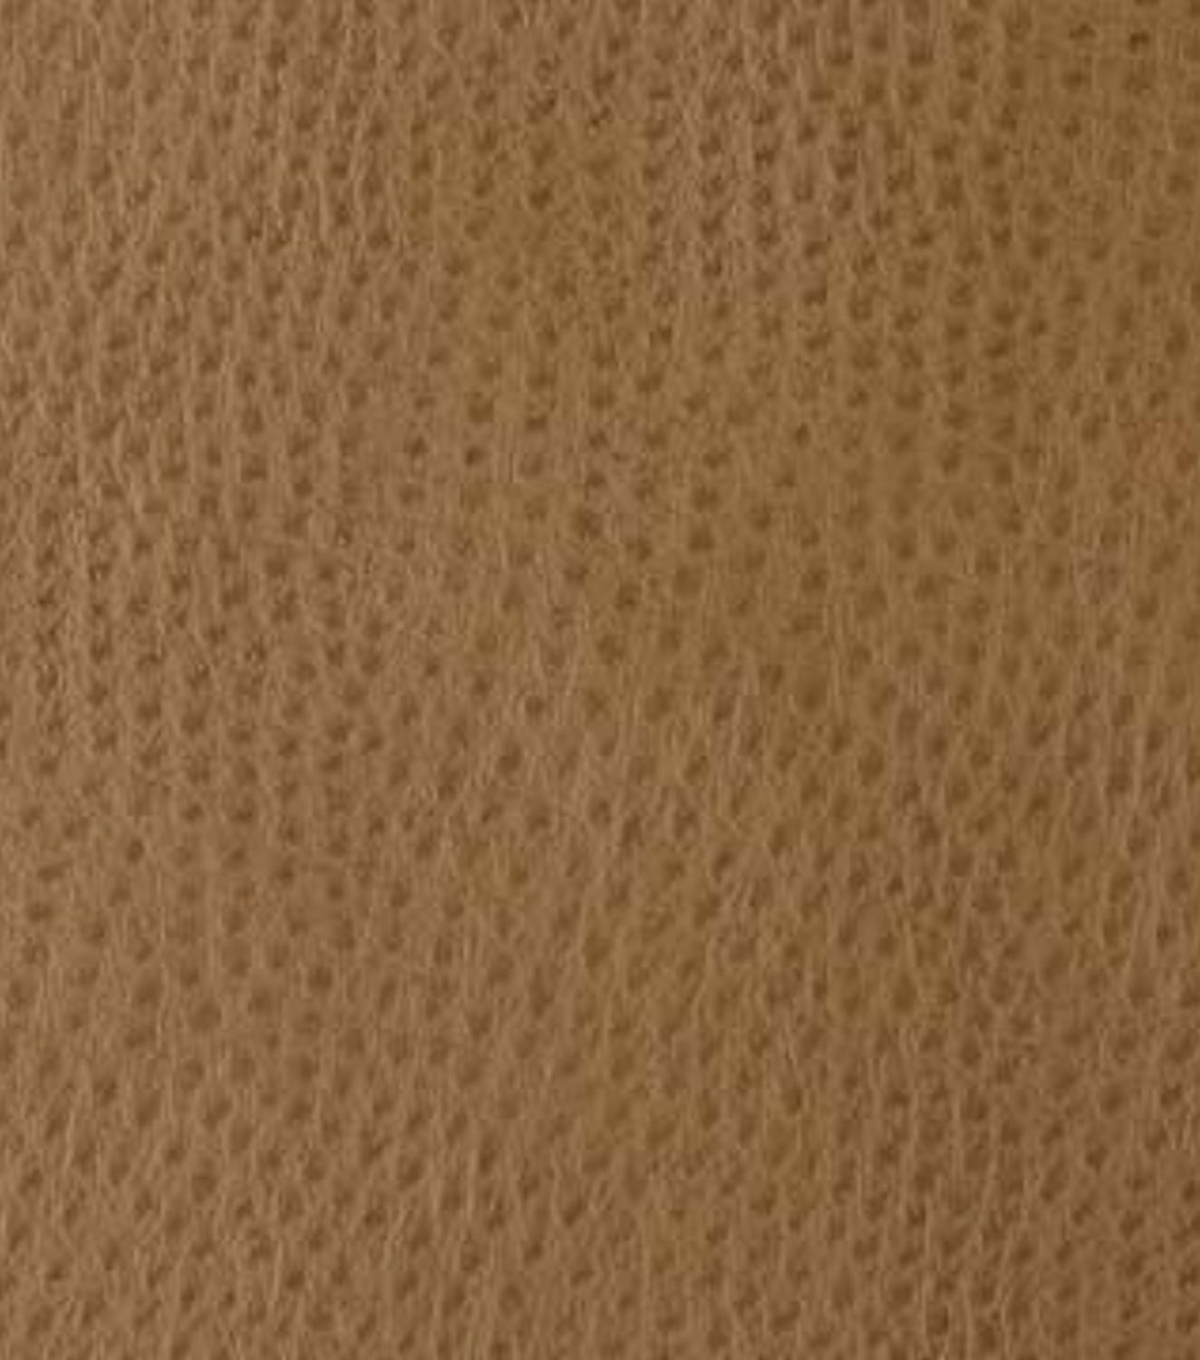 Home Decor 8\u0022x8\u0022 Fabric Swatch-Signature Series Outback Birch